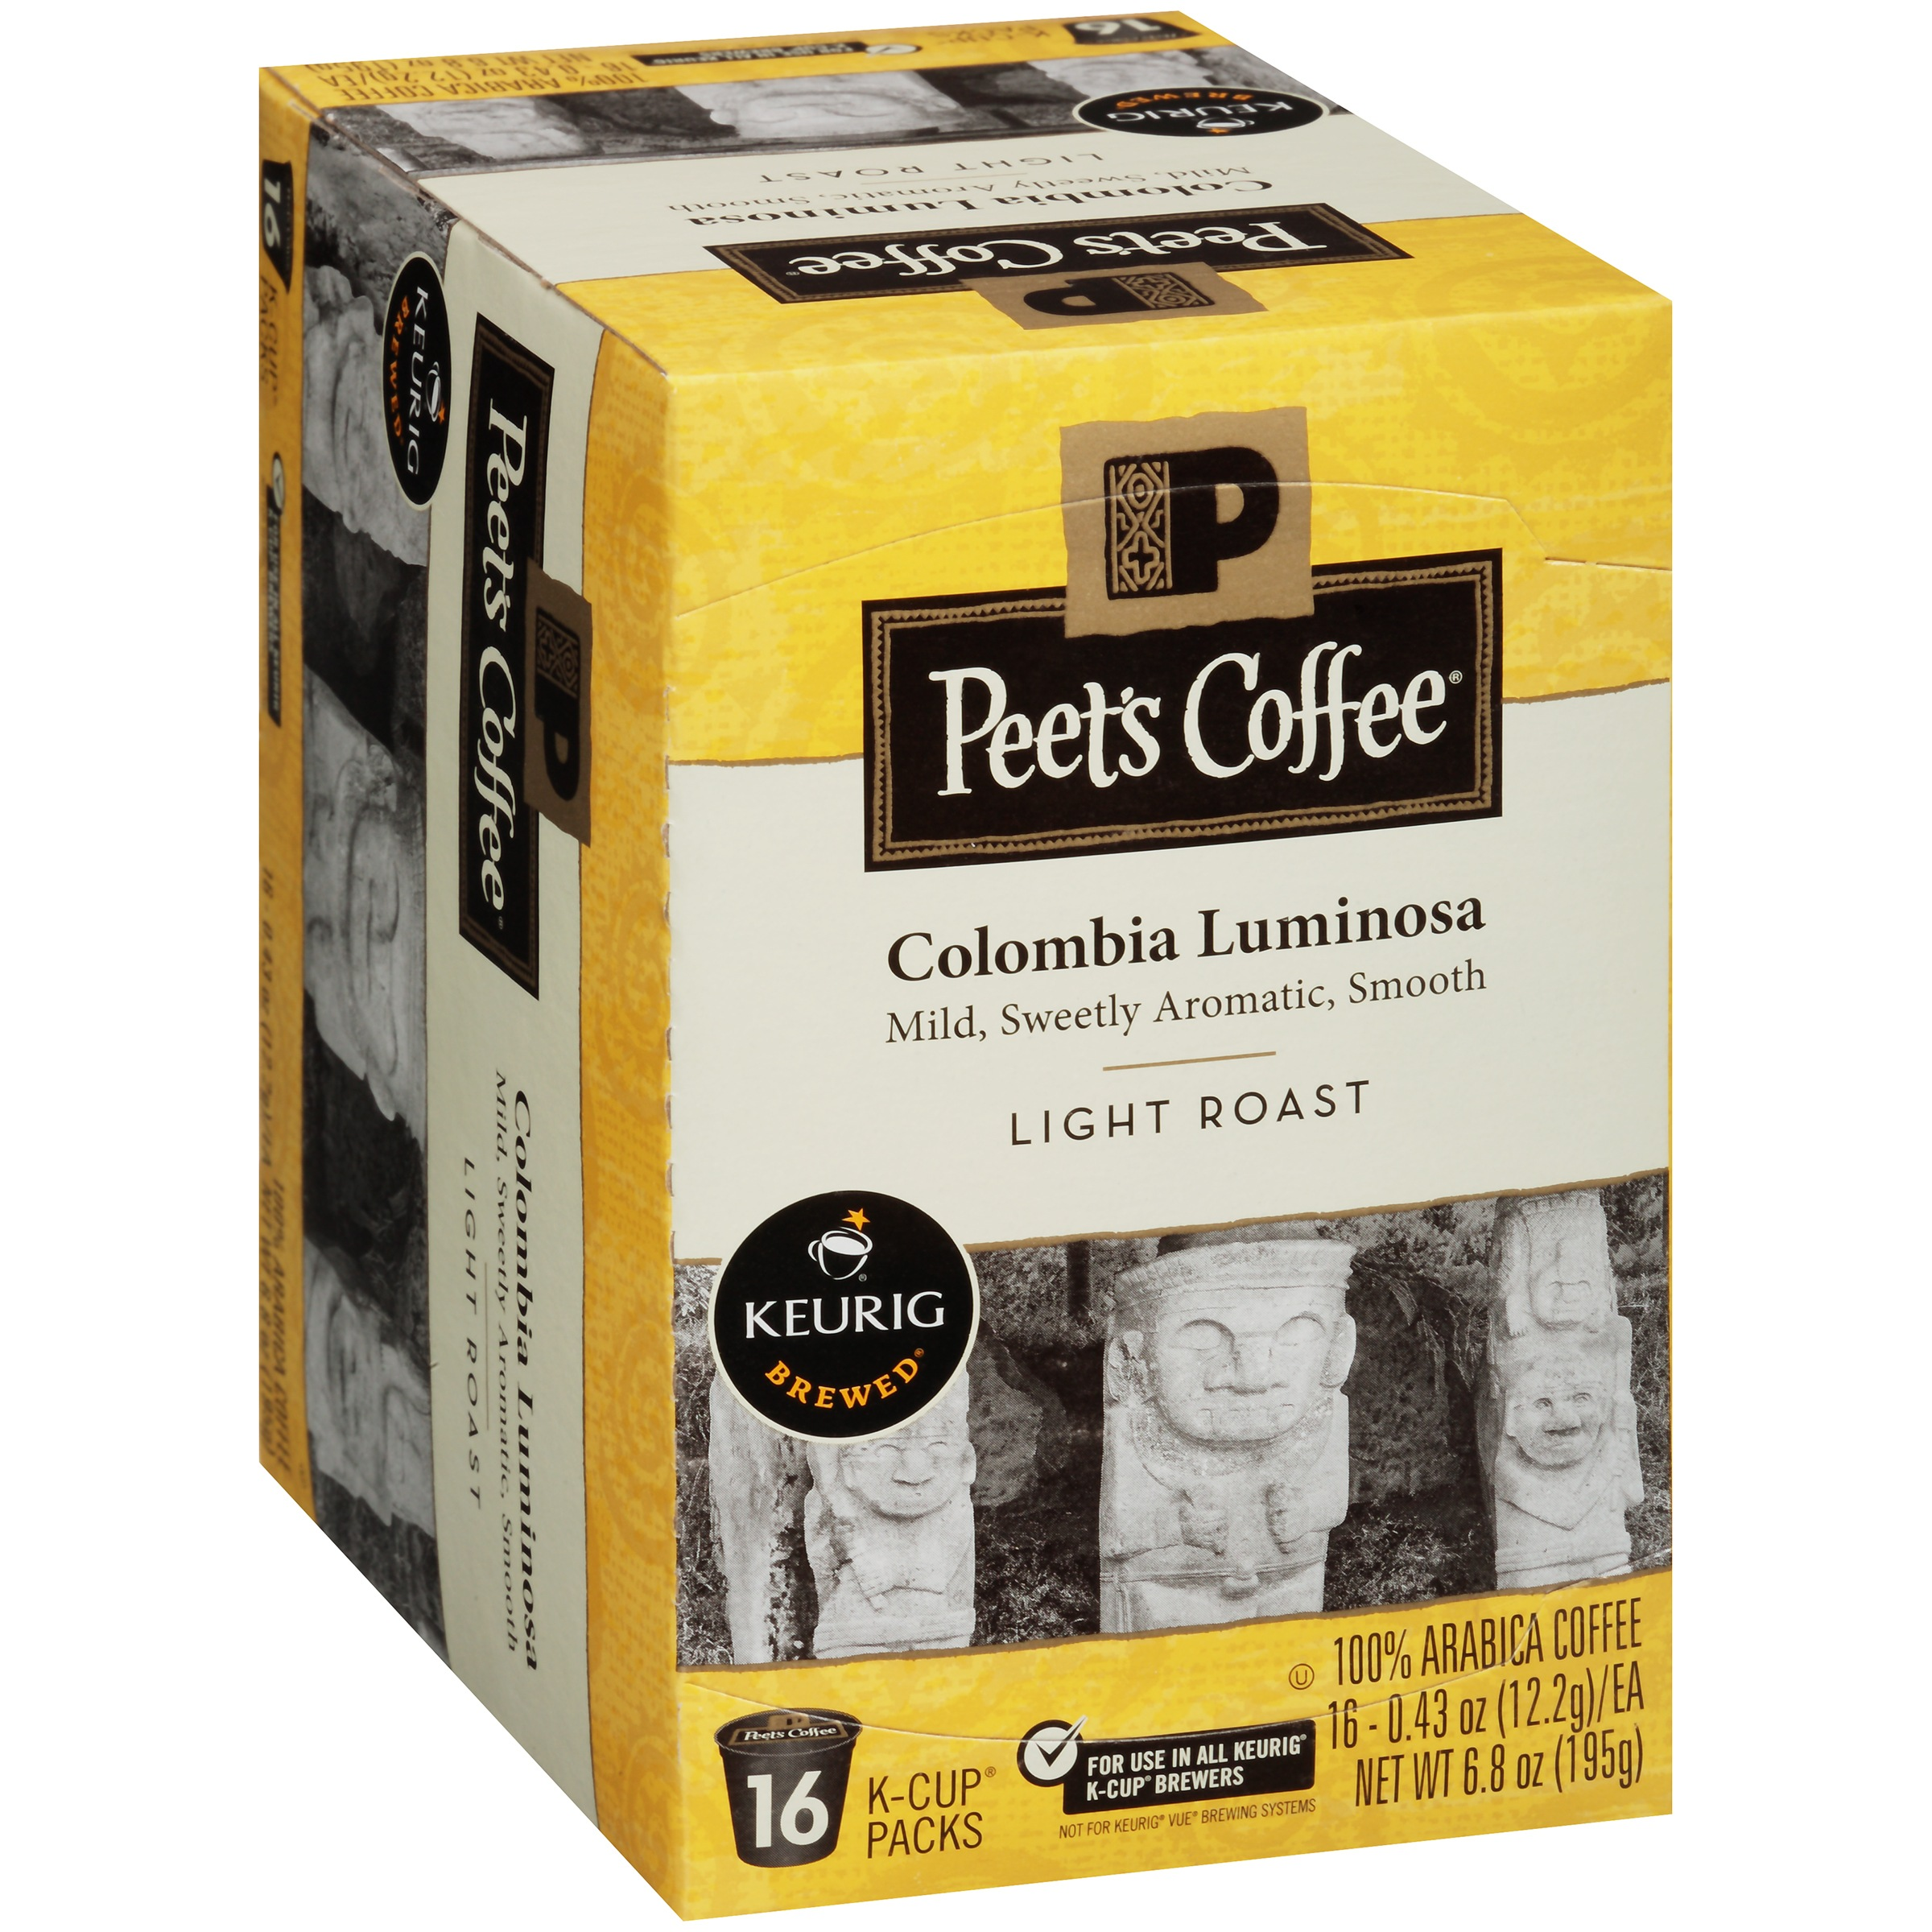 Peet's Coffee Colombia Luminosa Light Roast Coffee K-Cups, 0.43 oz, 16 count